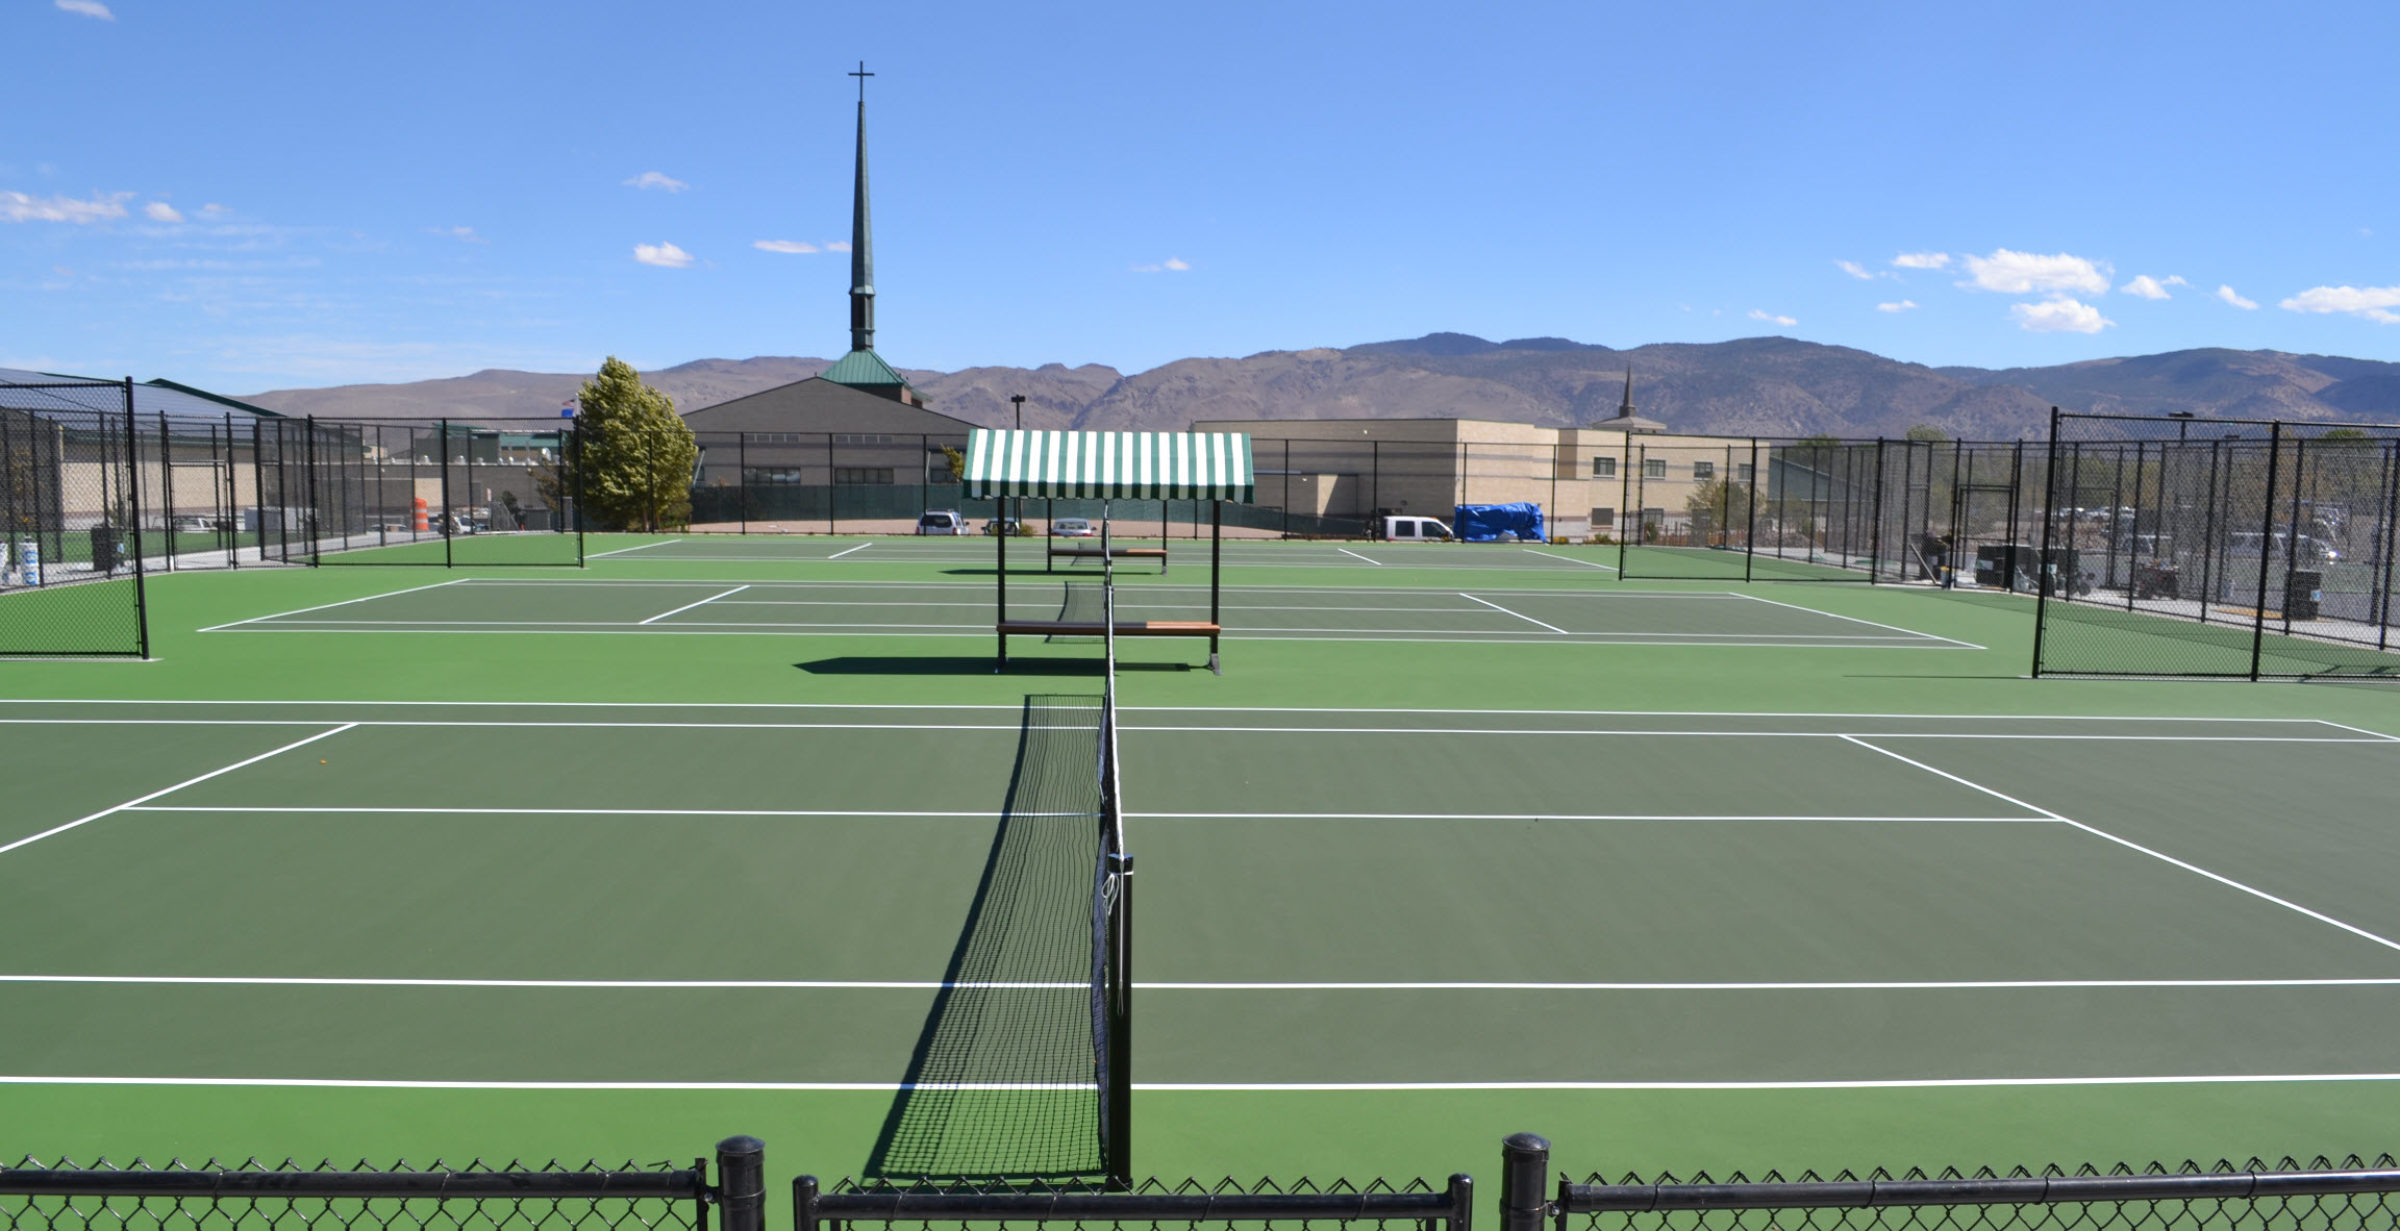 South Reno Tennis – A New Full Service Tennis Facility